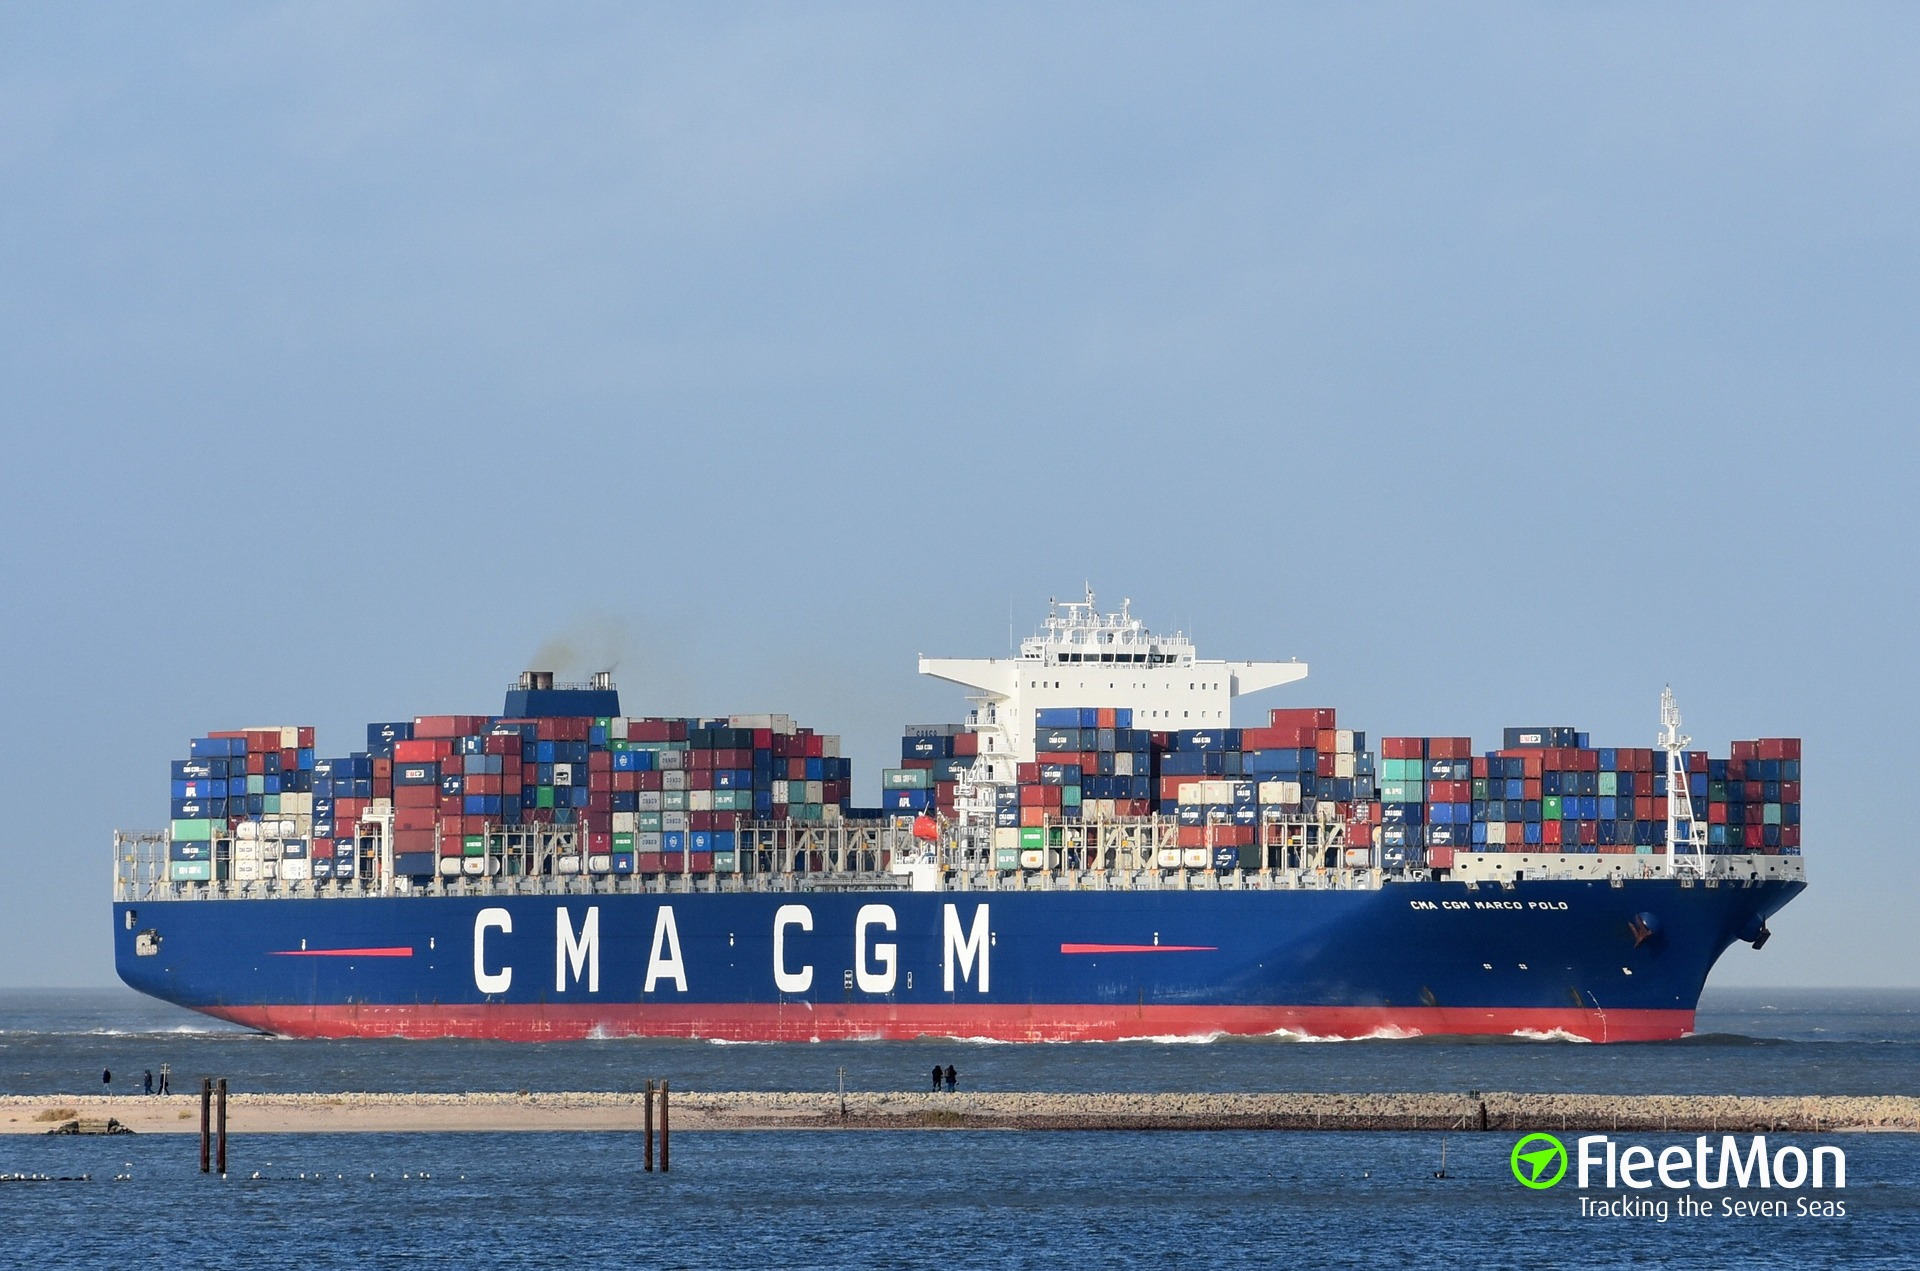 MARCO POLO, largest container ship of the world, to call Hamburg